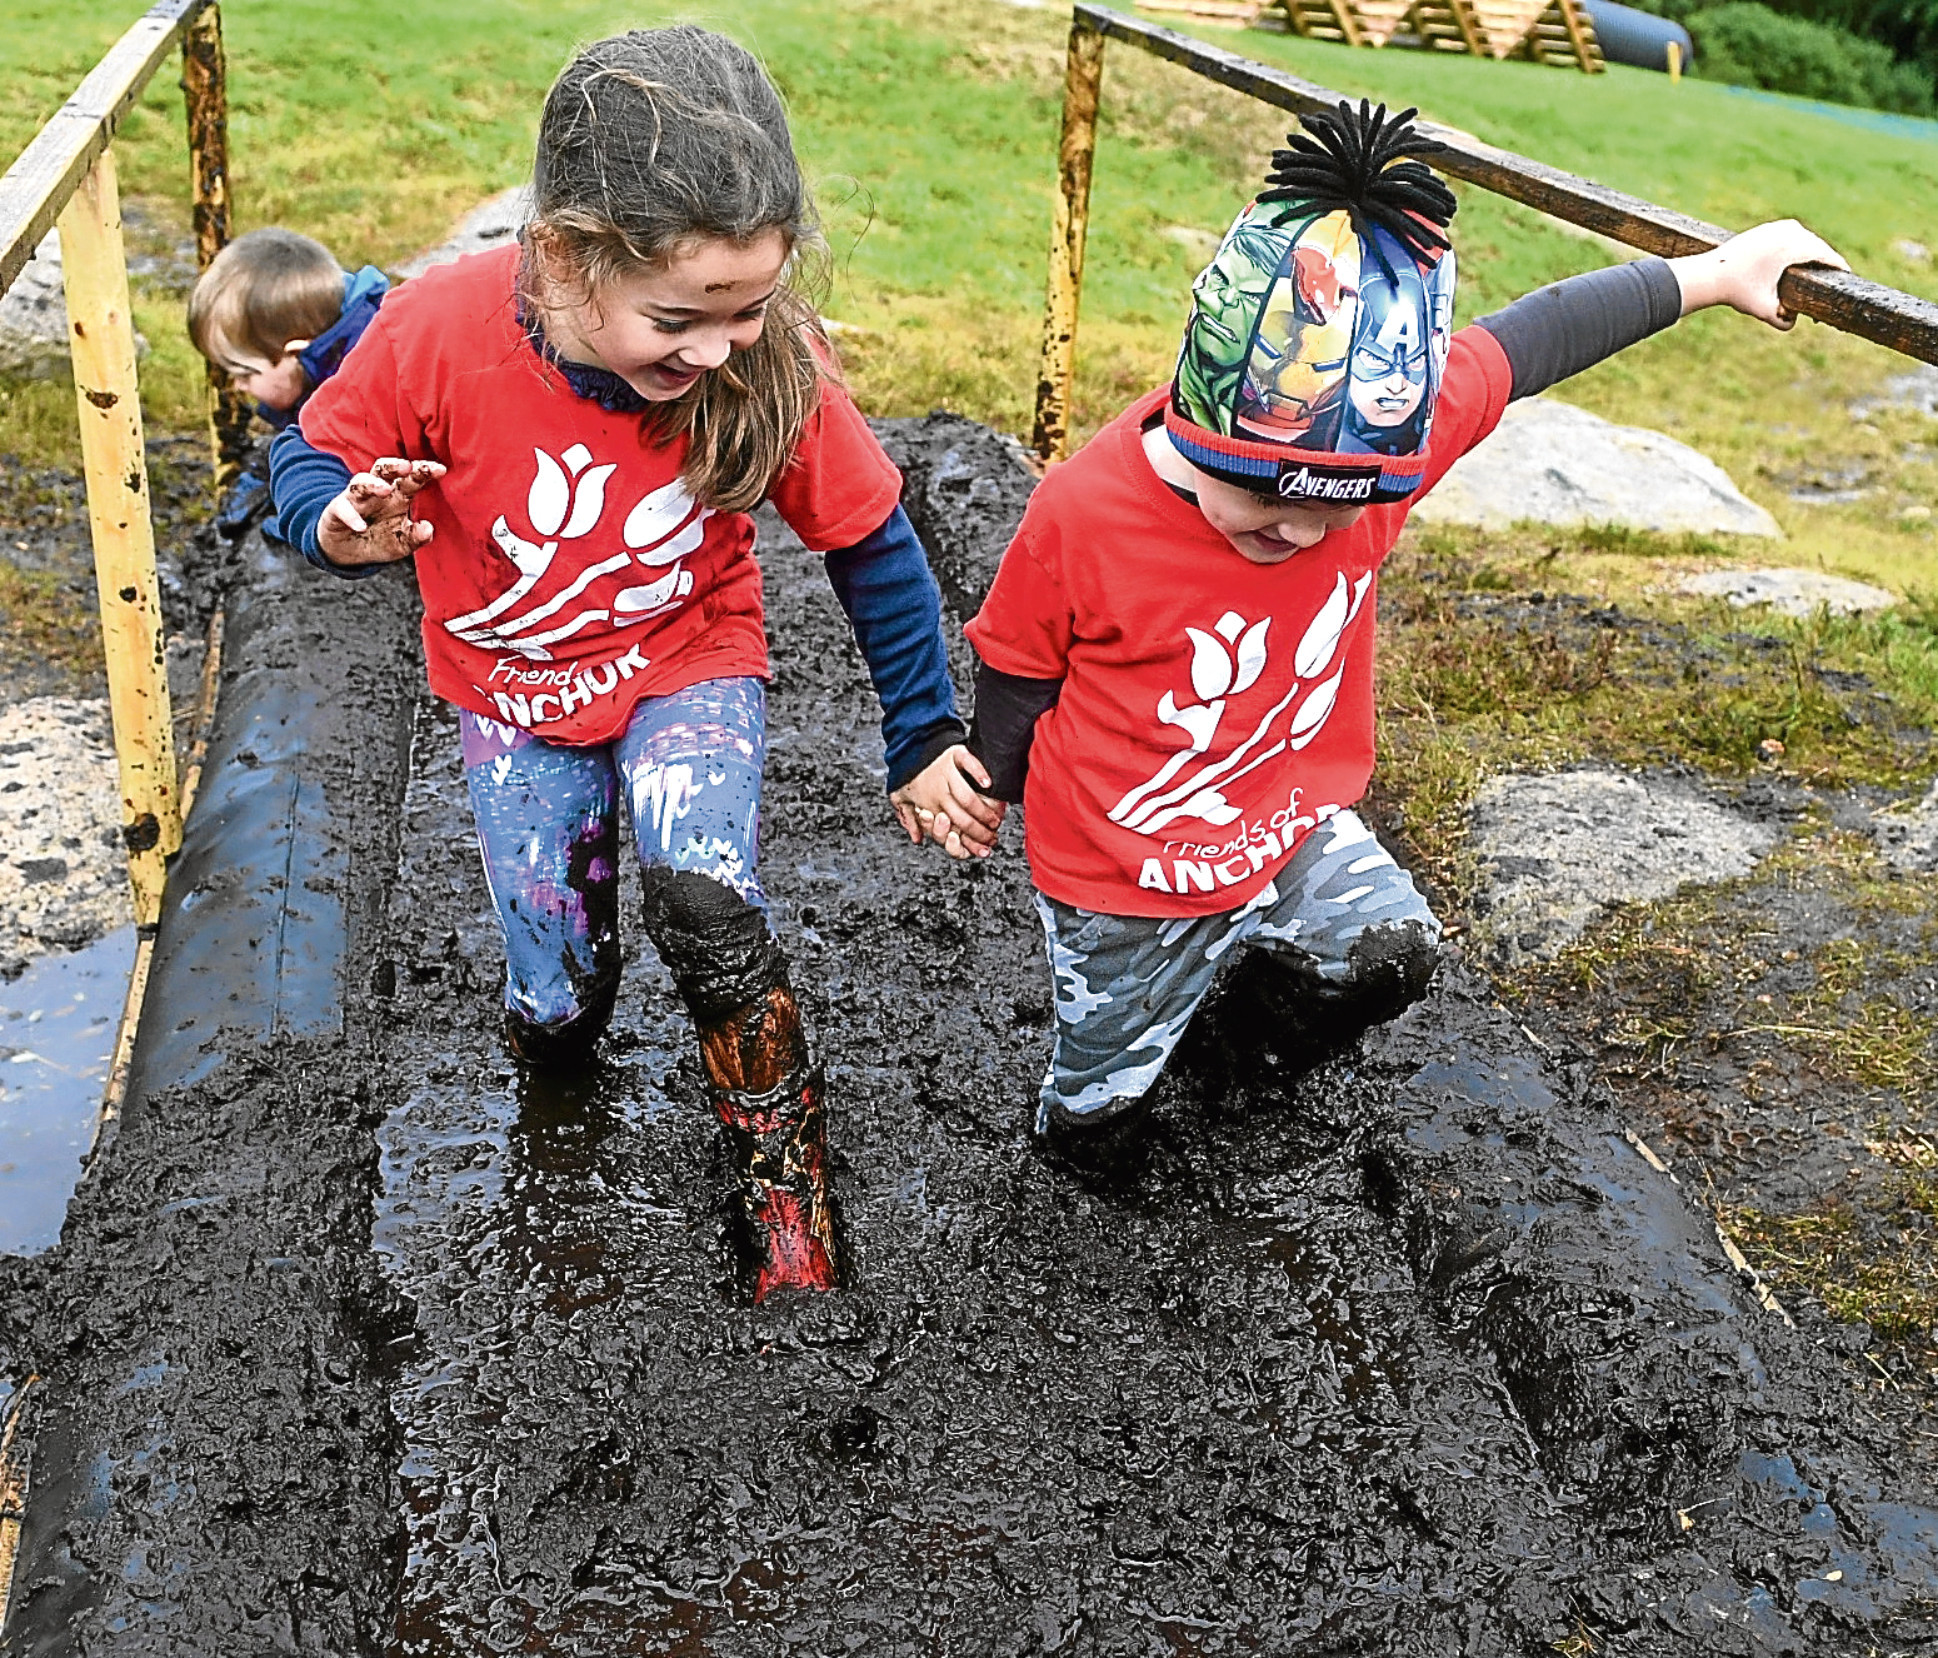 The popular North East mud run Glack Attack in Dunecht is launching a special course for children aged between 3 and 10 on the day. Friends of ANCHOR is the official charity for the event. Pictured trying the course is Chloe Davidson, 5 and brother Connor aged 3. Picture by Chris Sumner Taken 13/9/17